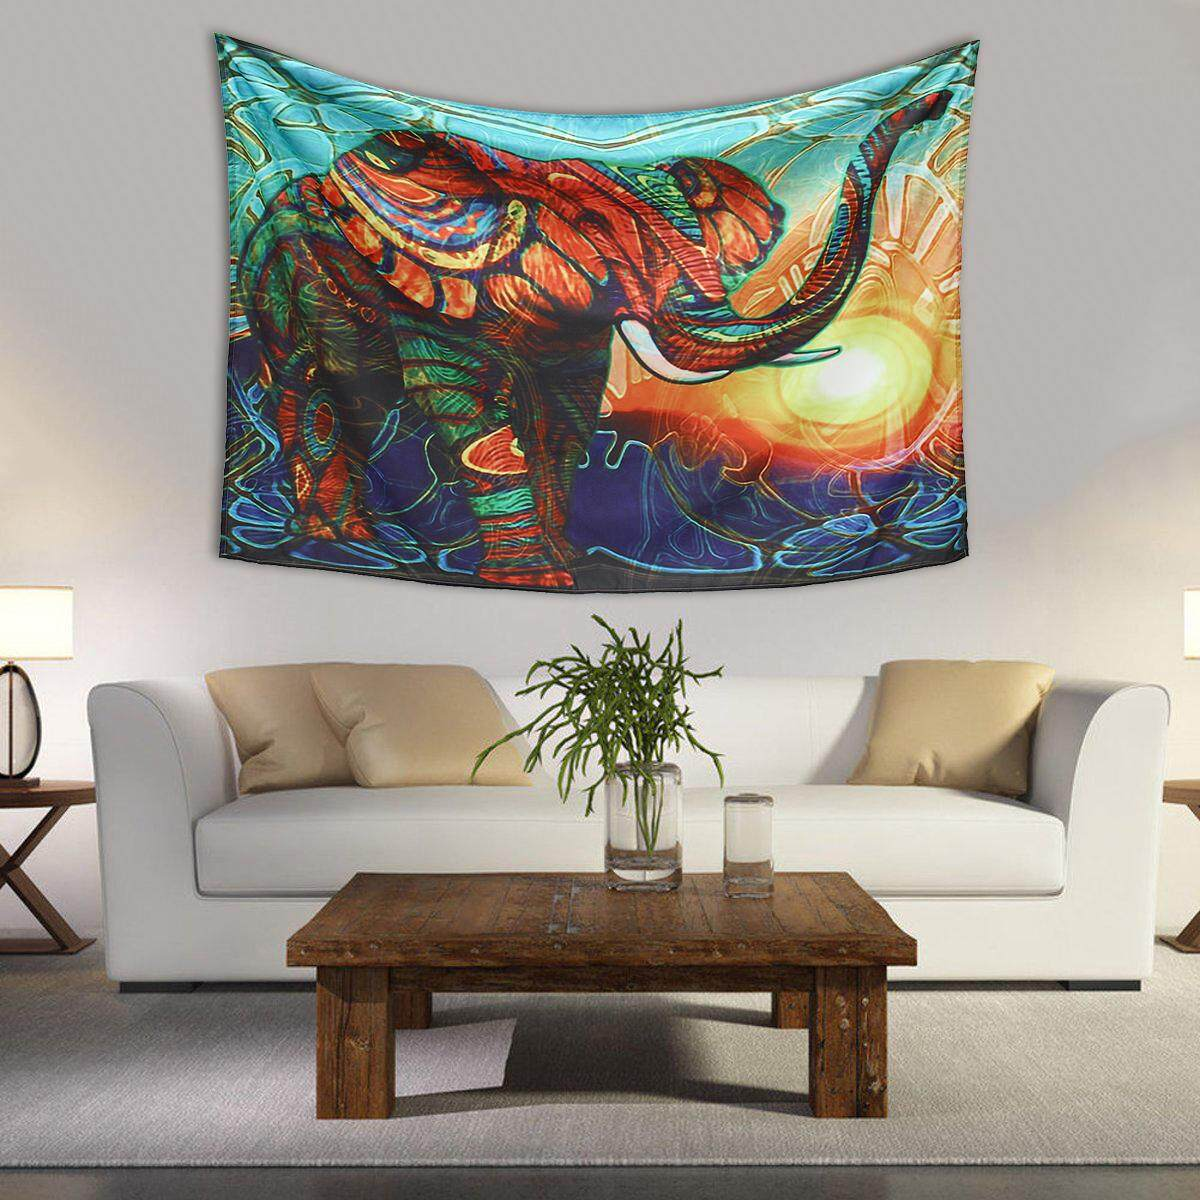 Mandala Elephant Tapestry Wall Hanging Decorative Tapestry Art Boho Decoration 200x150